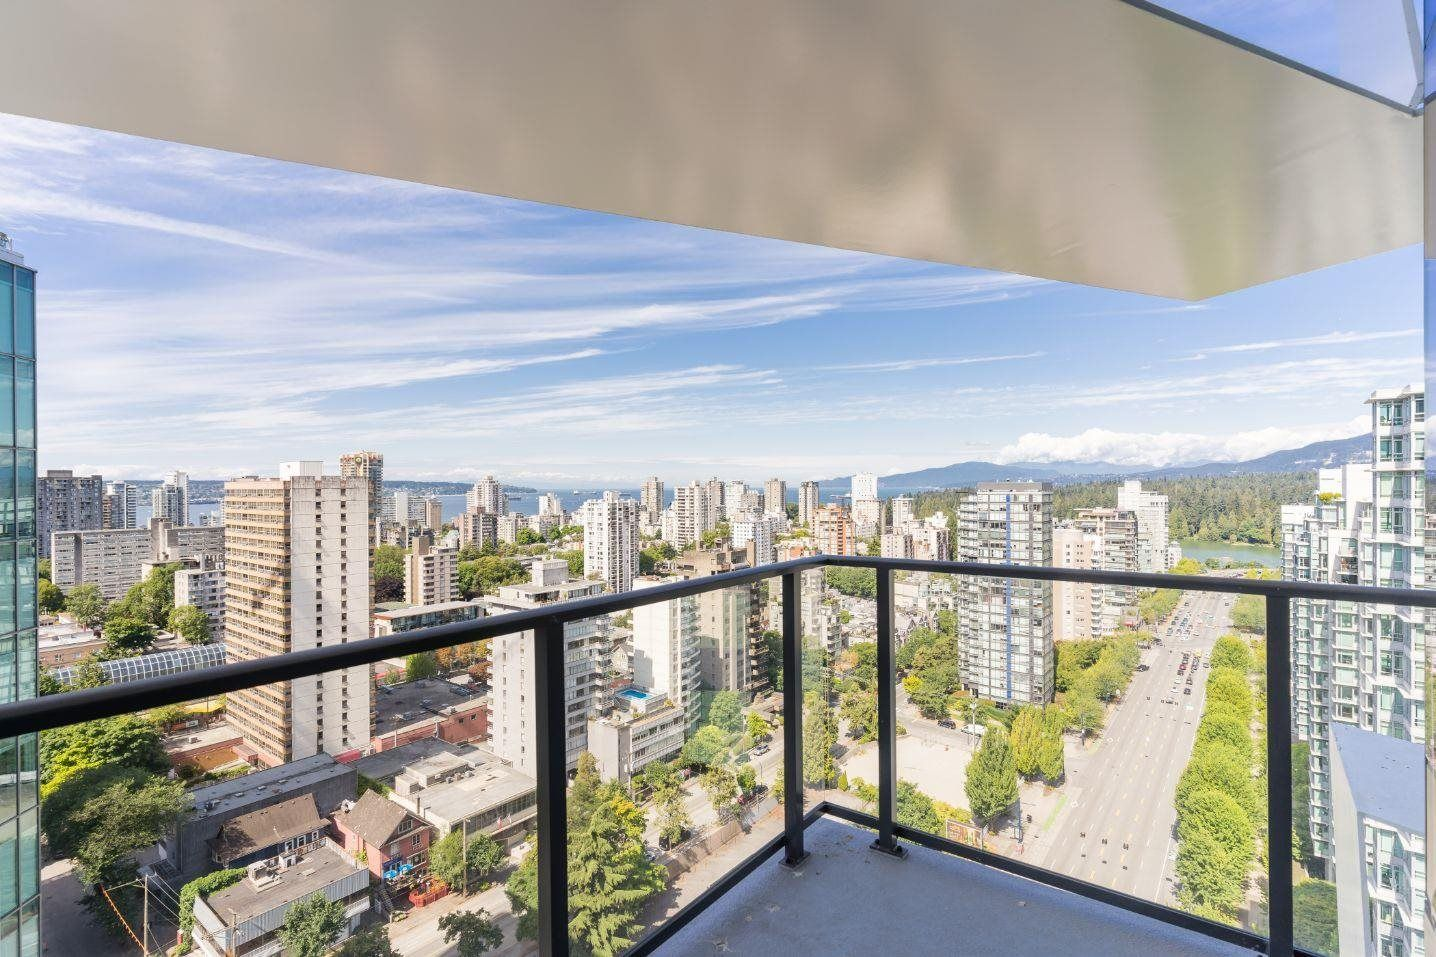 """Main Photo: 2305 620 CARDERO Street in Vancouver: Coal Harbour Condo for sale in """"CARDERO"""" (Vancouver West)  : MLS®# R2603652"""